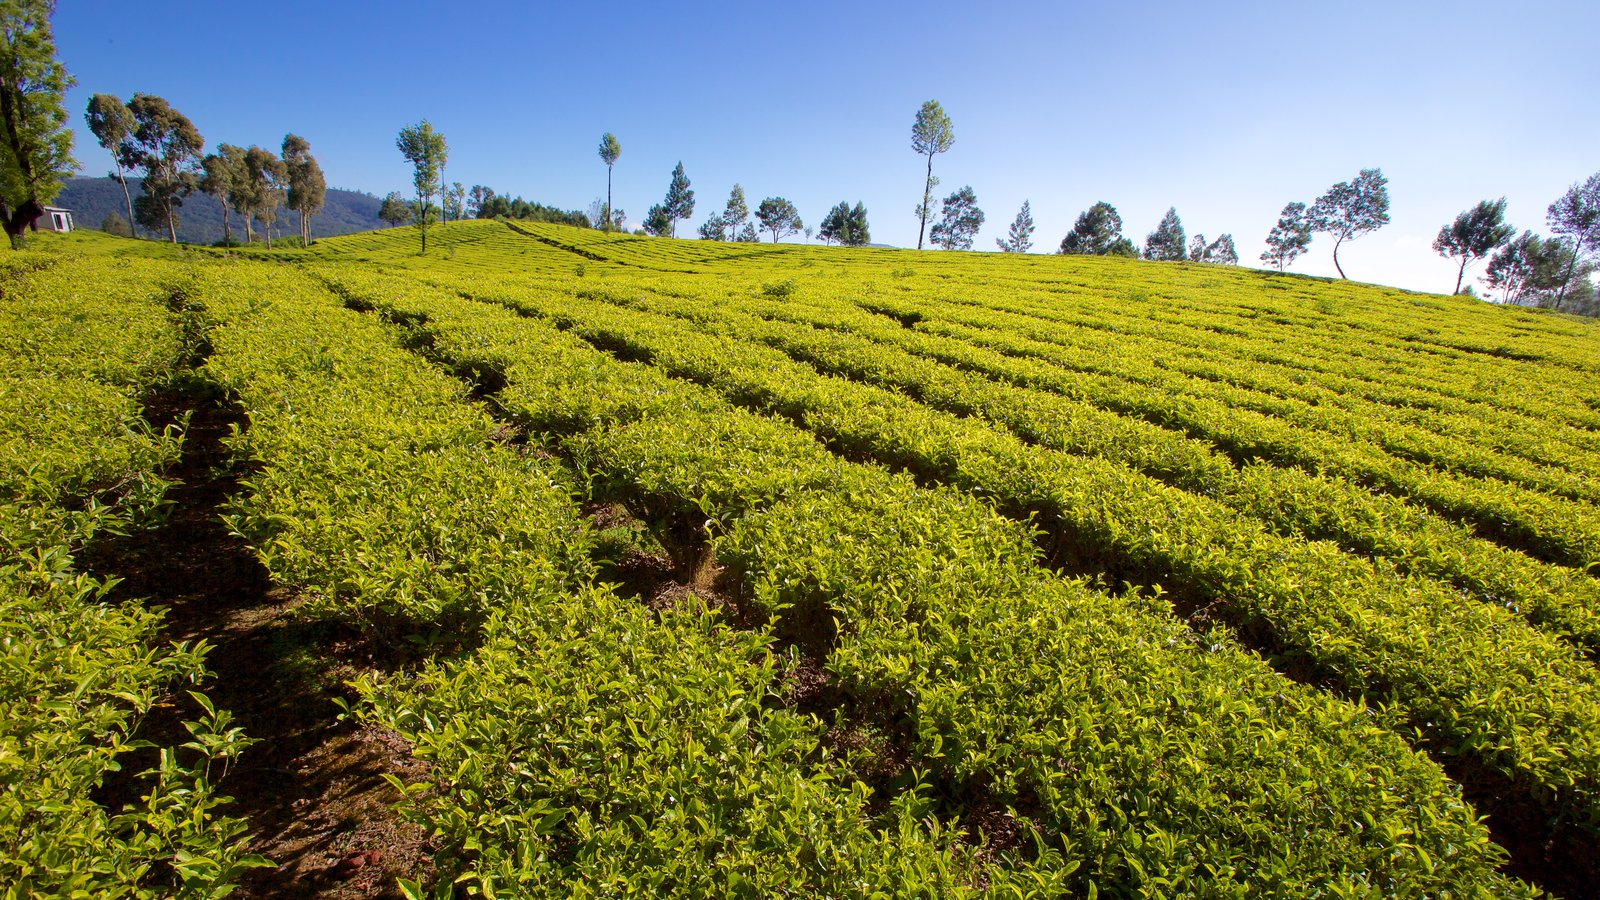 Ooty which includes farmland and tranquil scenes